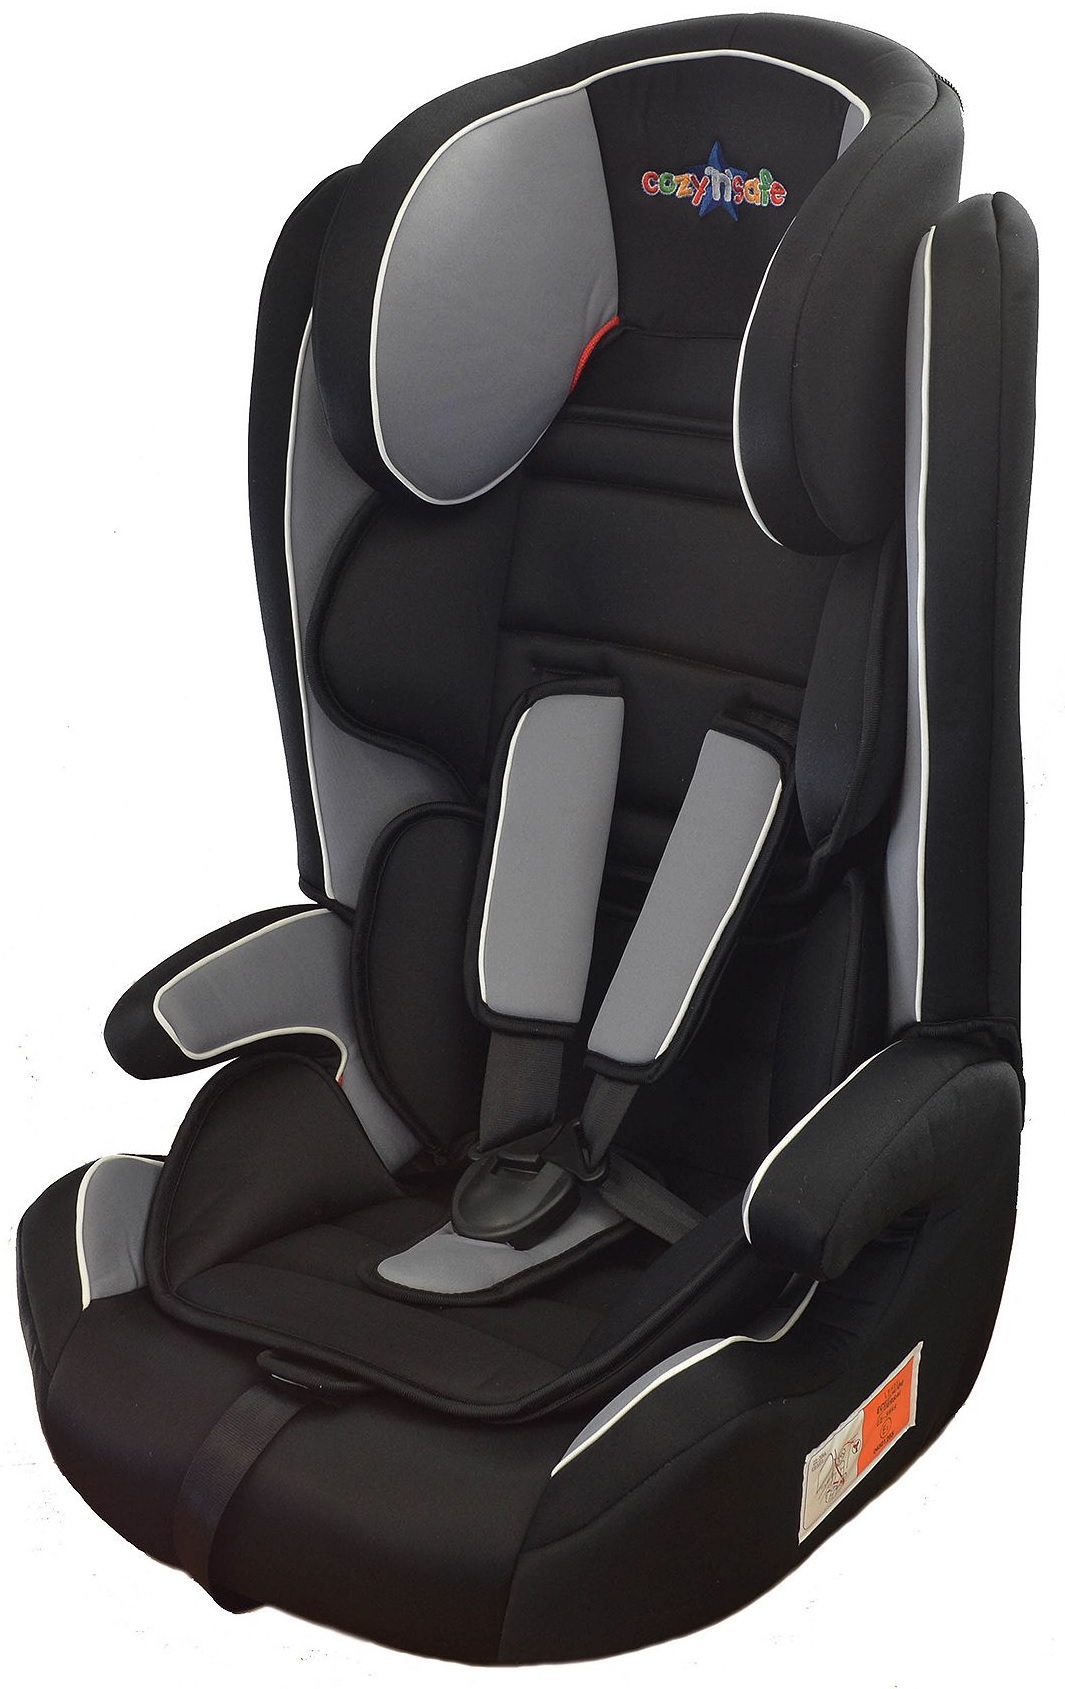 new cozy 39 n 39 safe fuji high back booster car seat with harness group 1 2 3 ebay. Black Bedroom Furniture Sets. Home Design Ideas